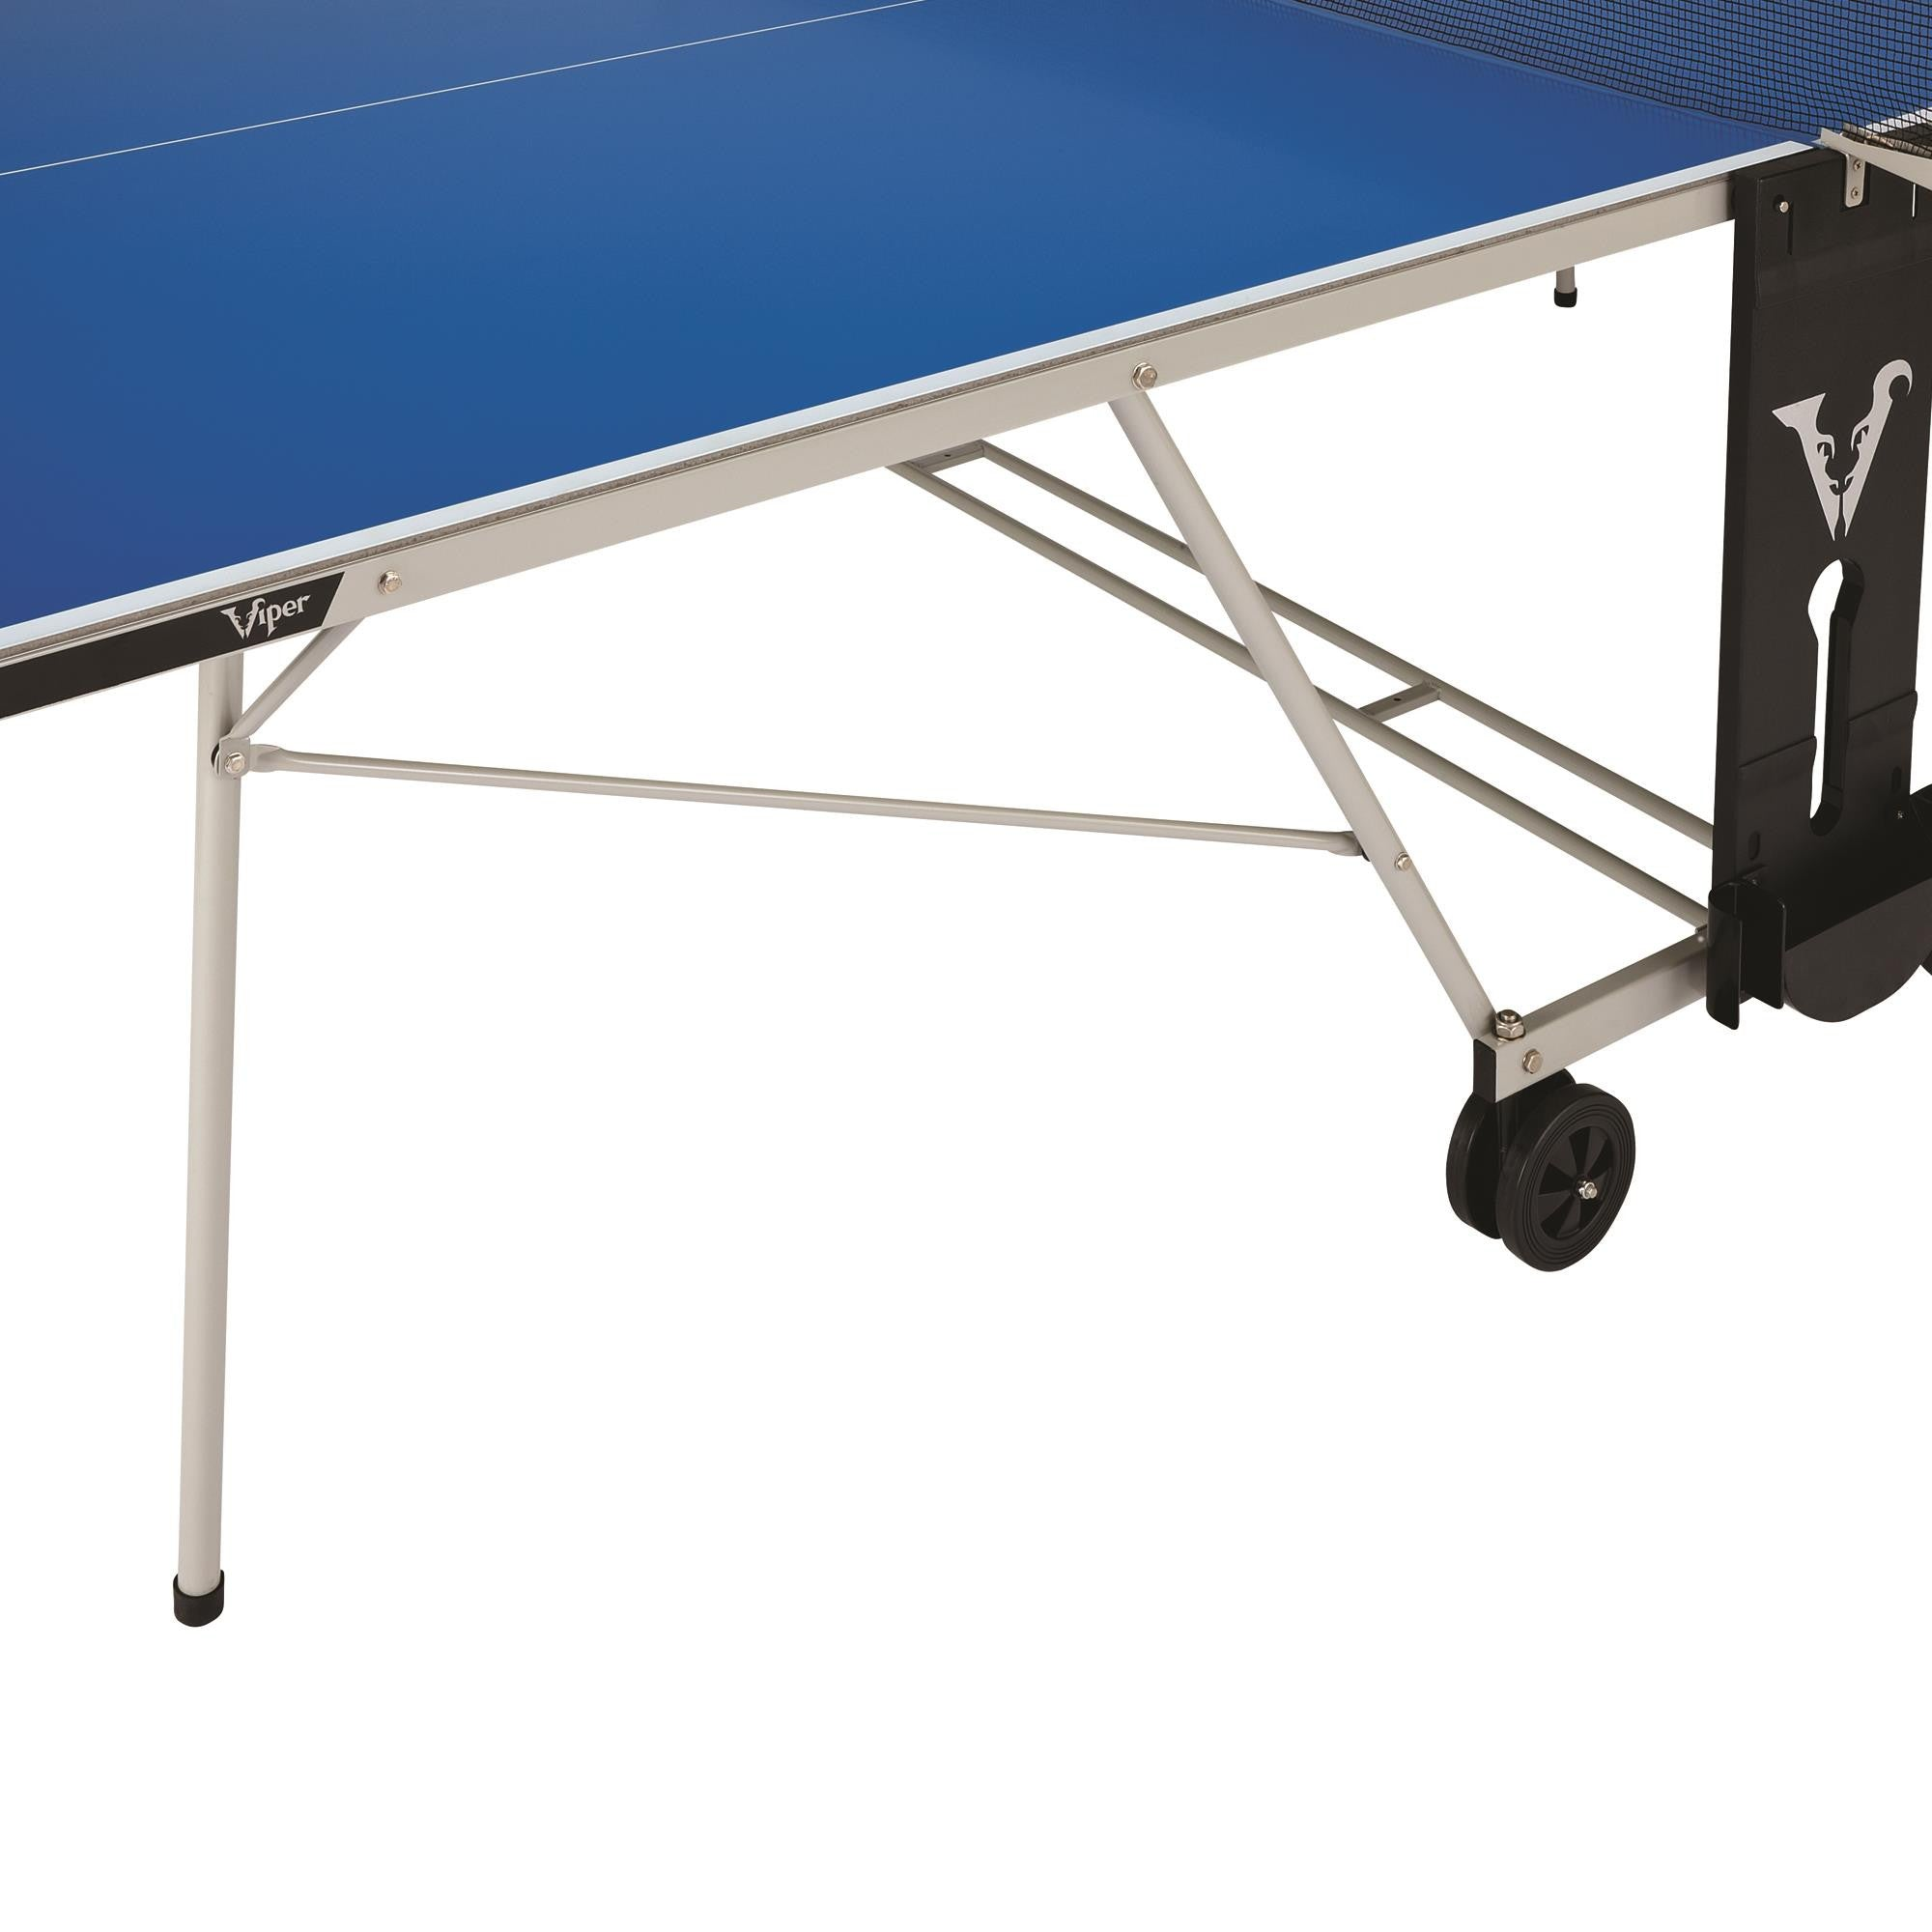 ... Viper Aspen Outdoor Table Tennis Table 70 0200  ...